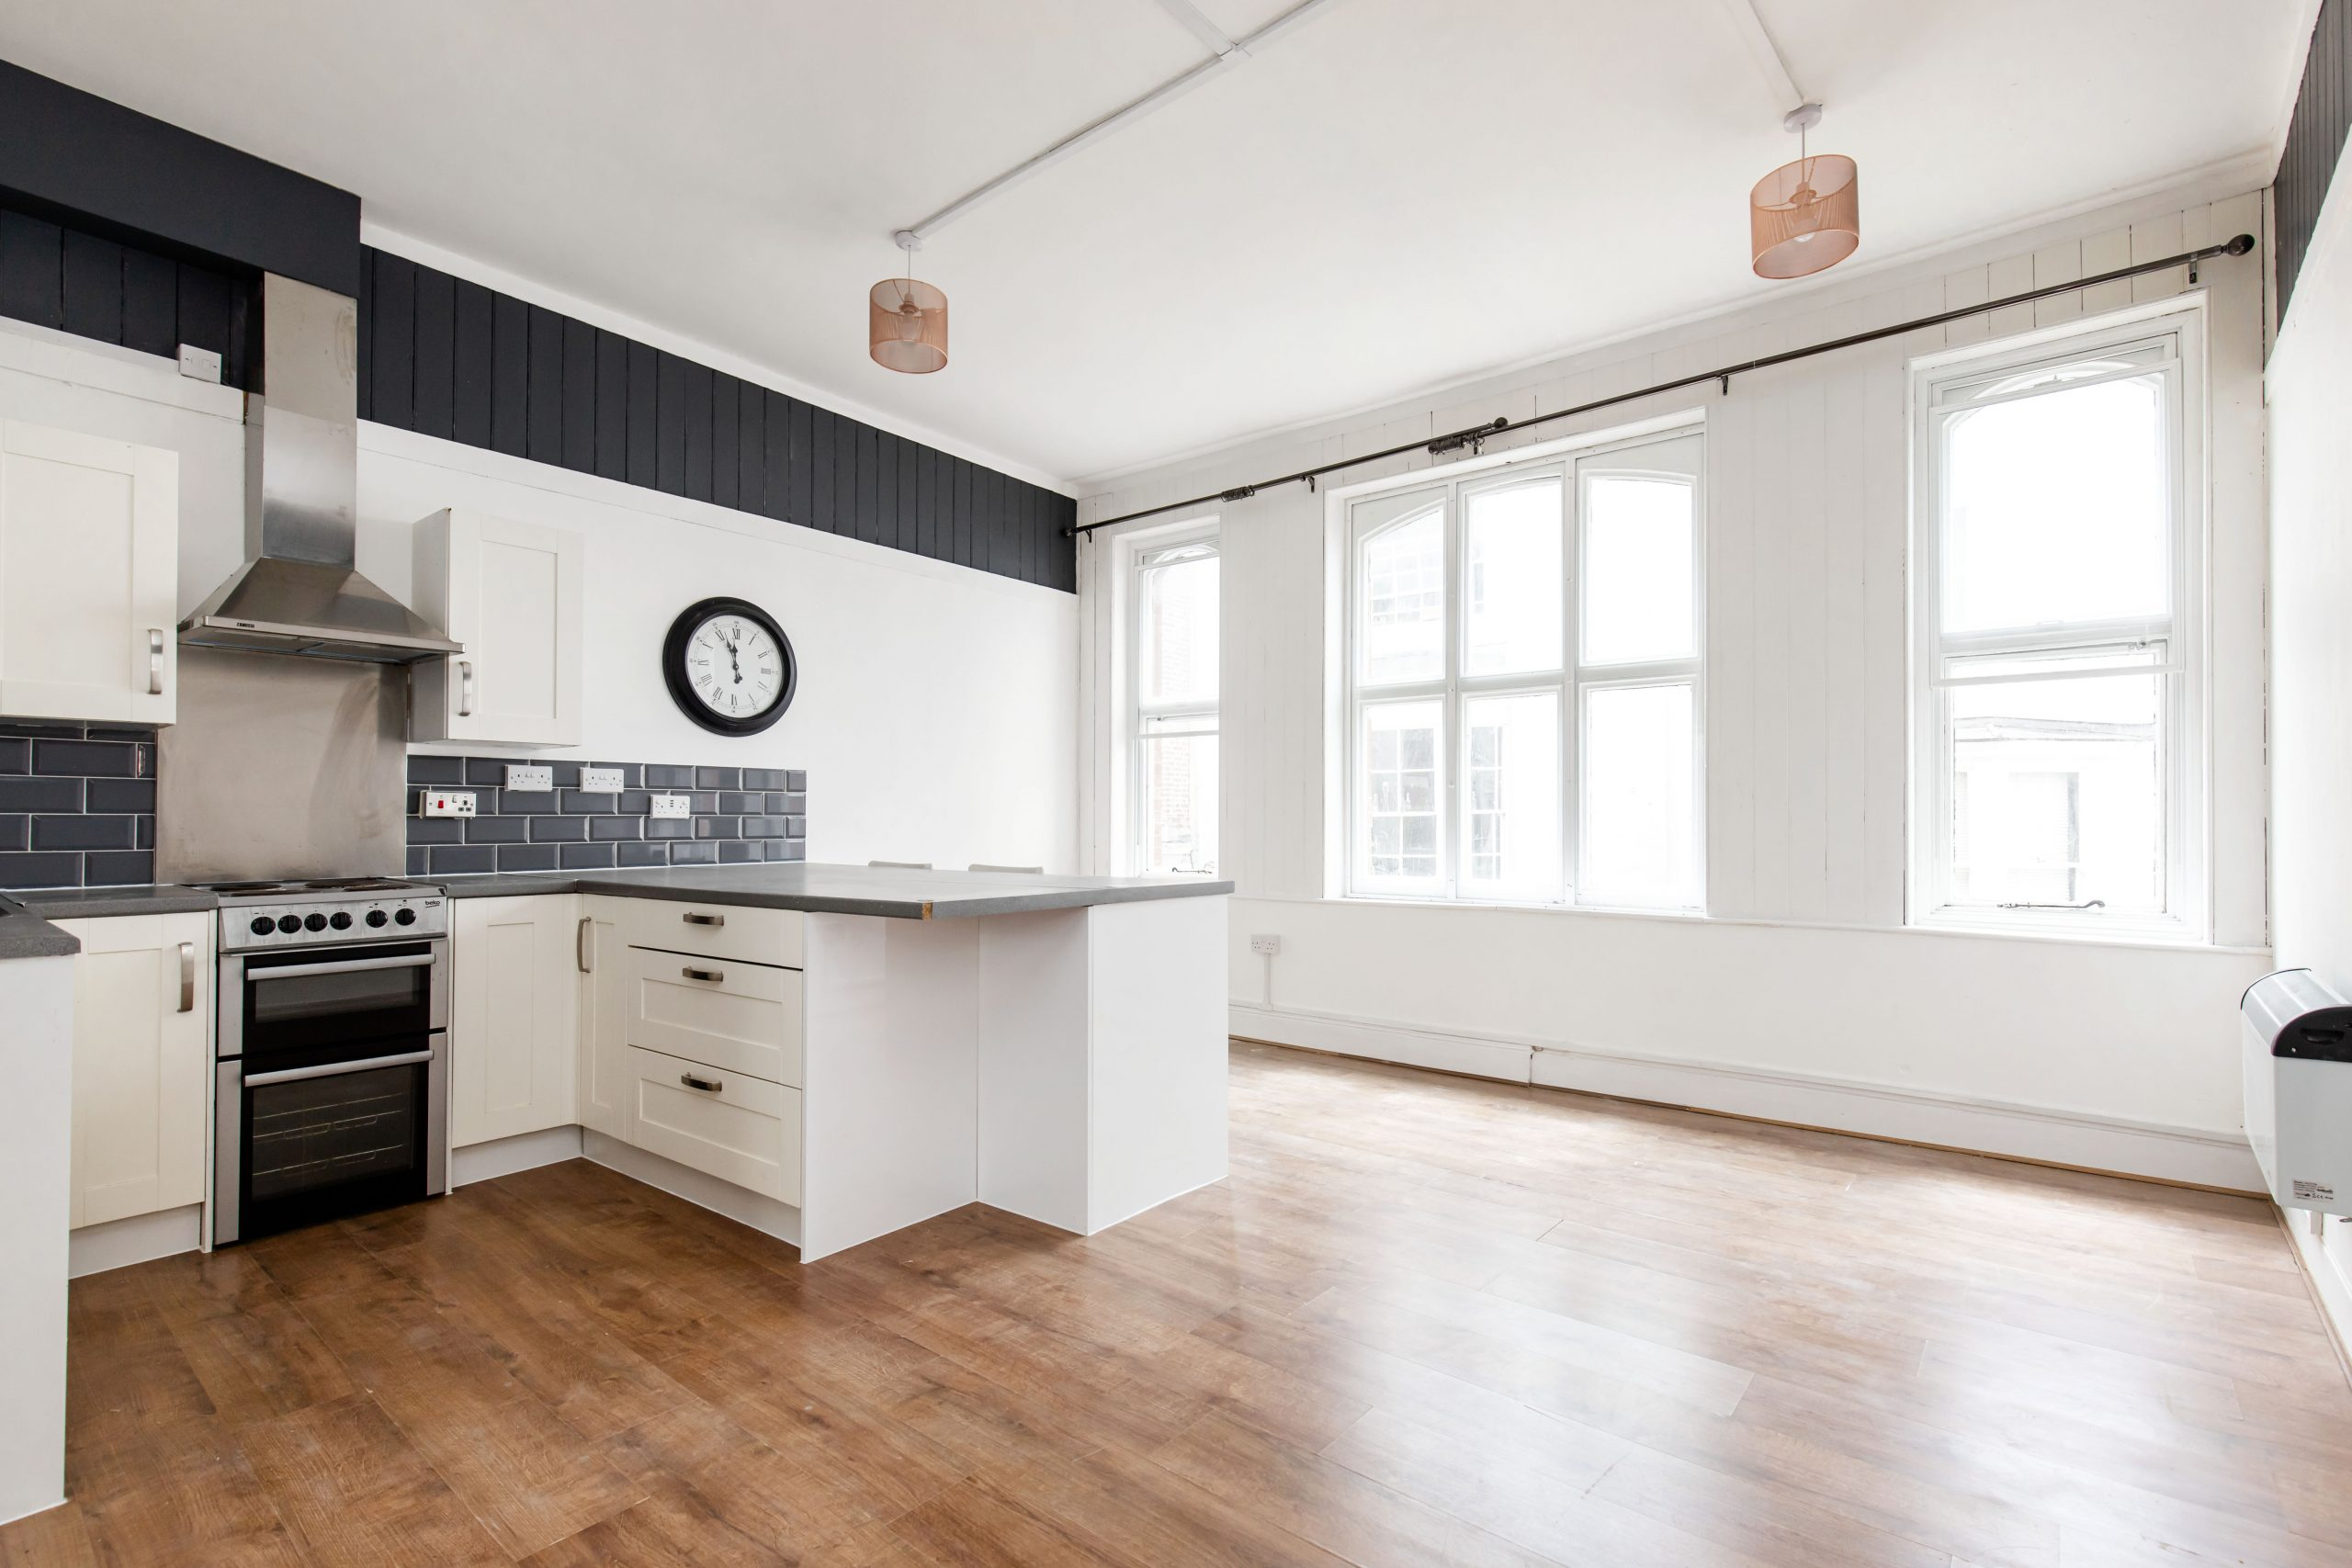 Hastings – 1 Bedroom Flat